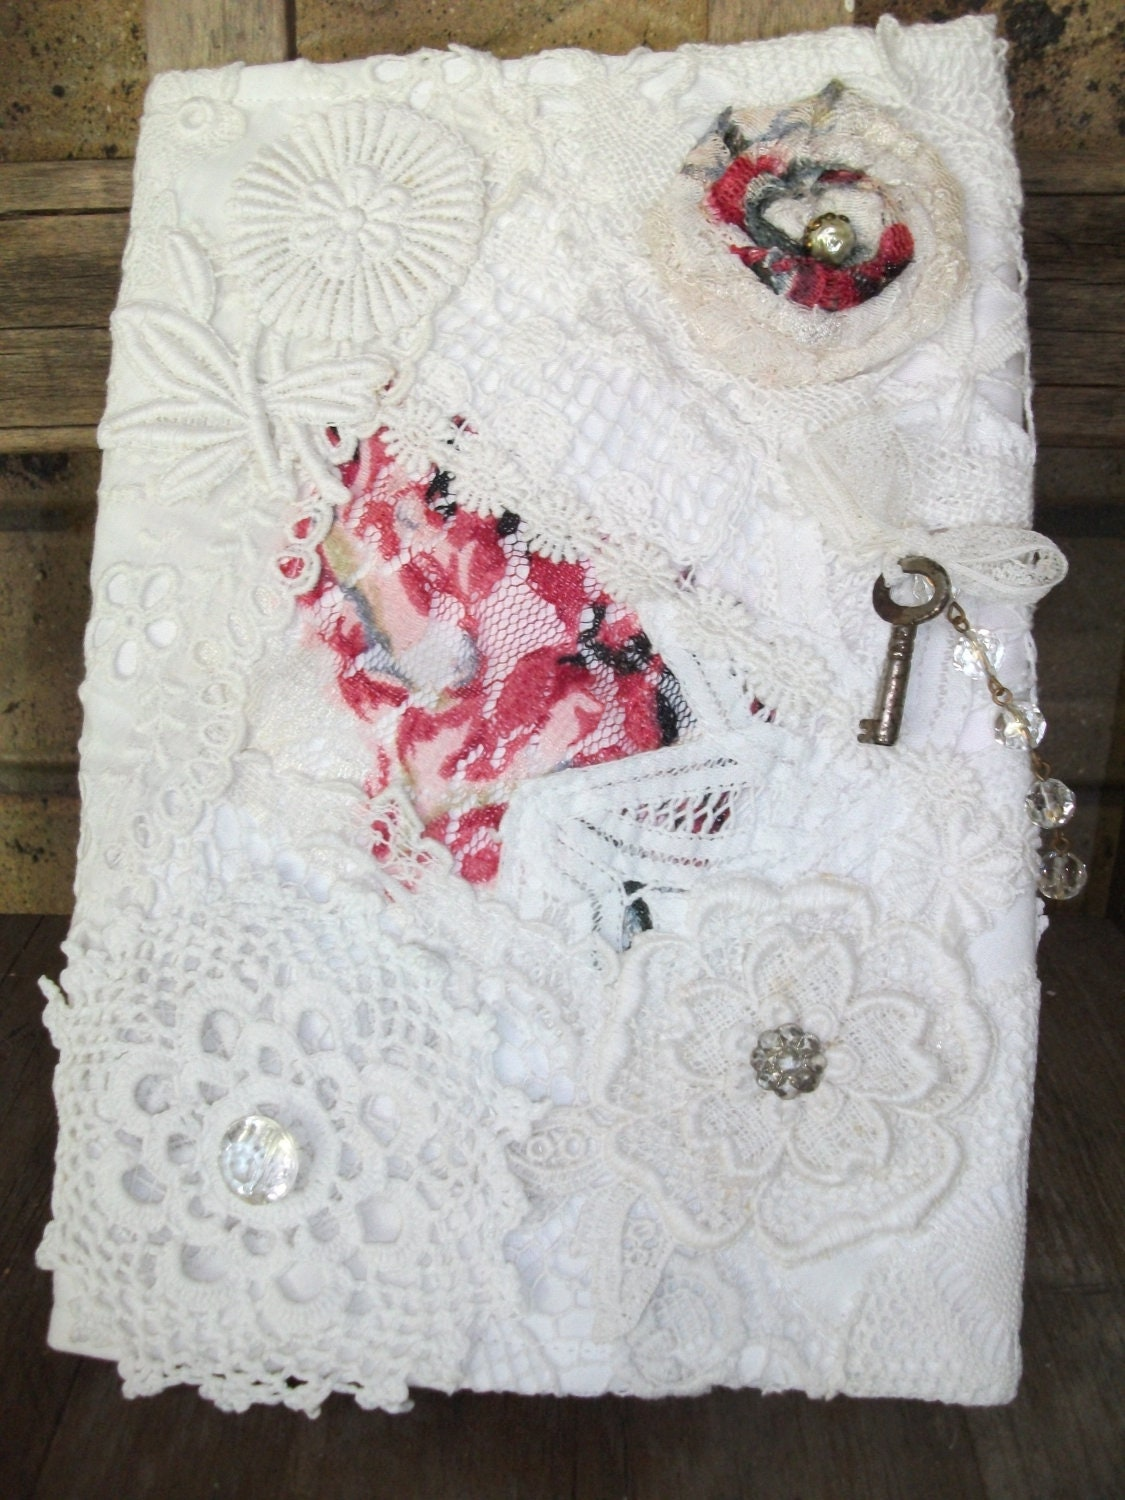 Repurposed Romantic Vintage White Lace Journal Cover, Includes Hardcover Journal, Ooak